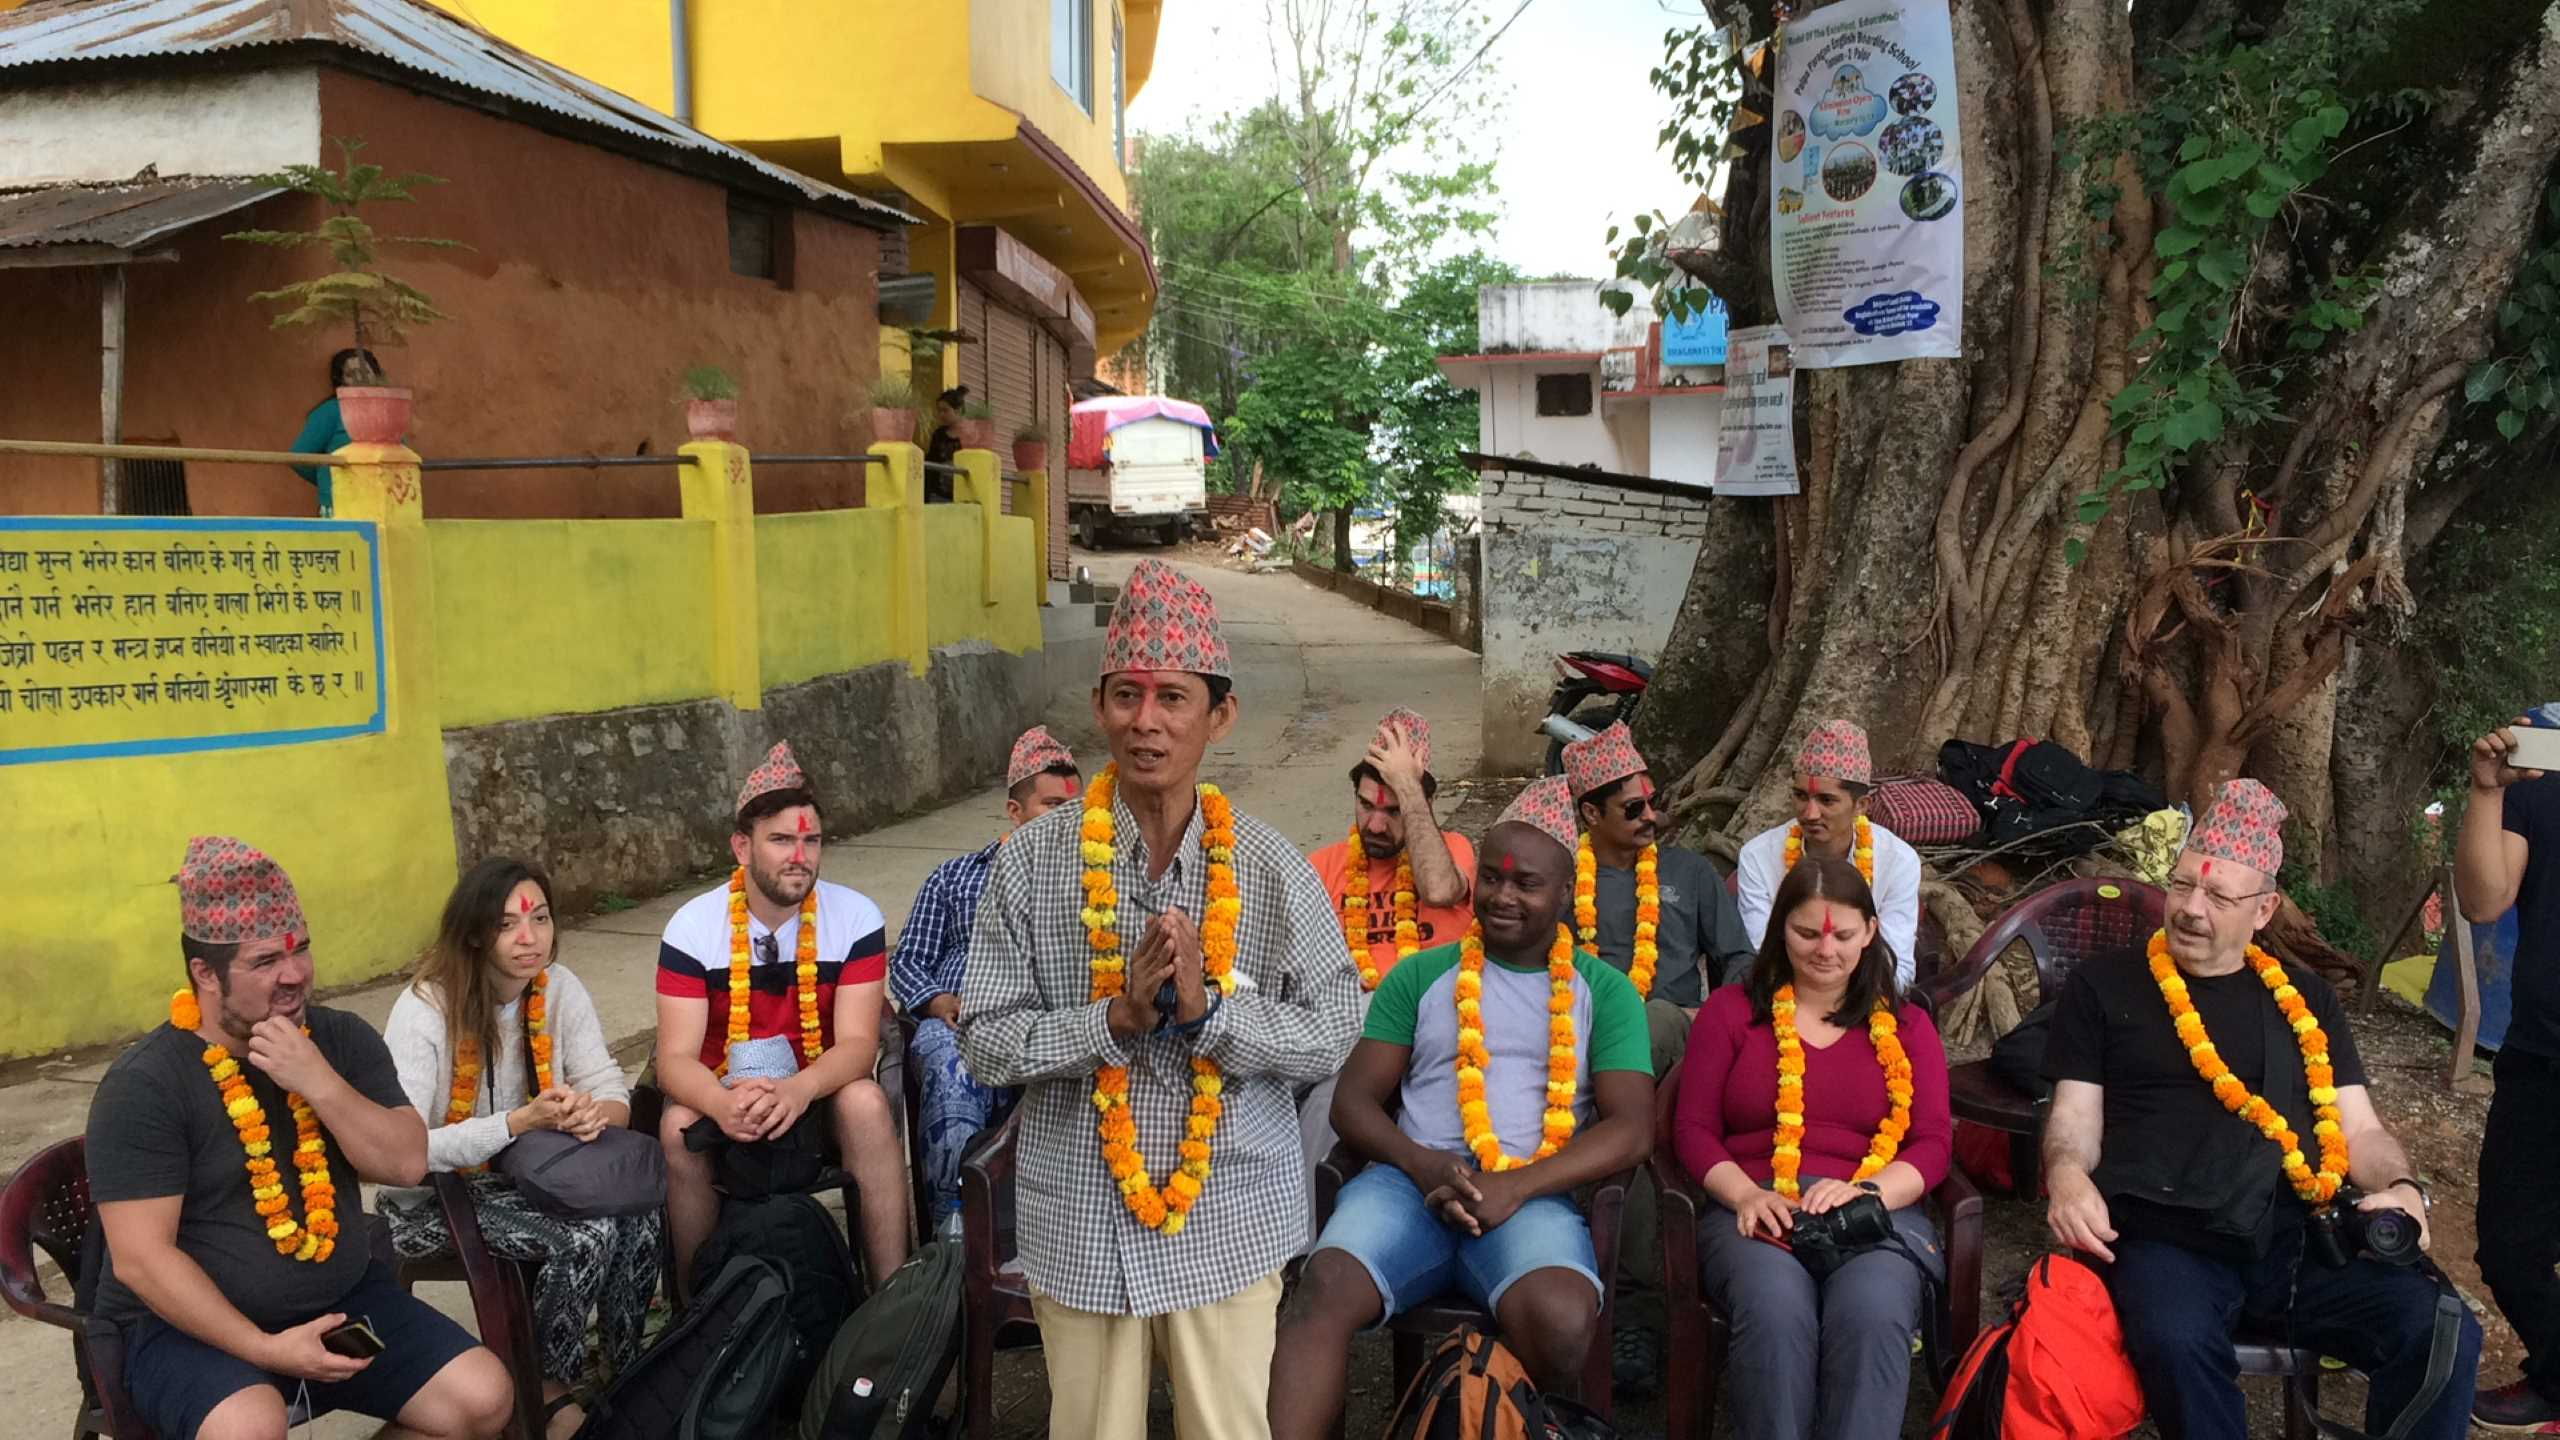 Community memebrs welcoming the Guests at Palpa Community Homestay